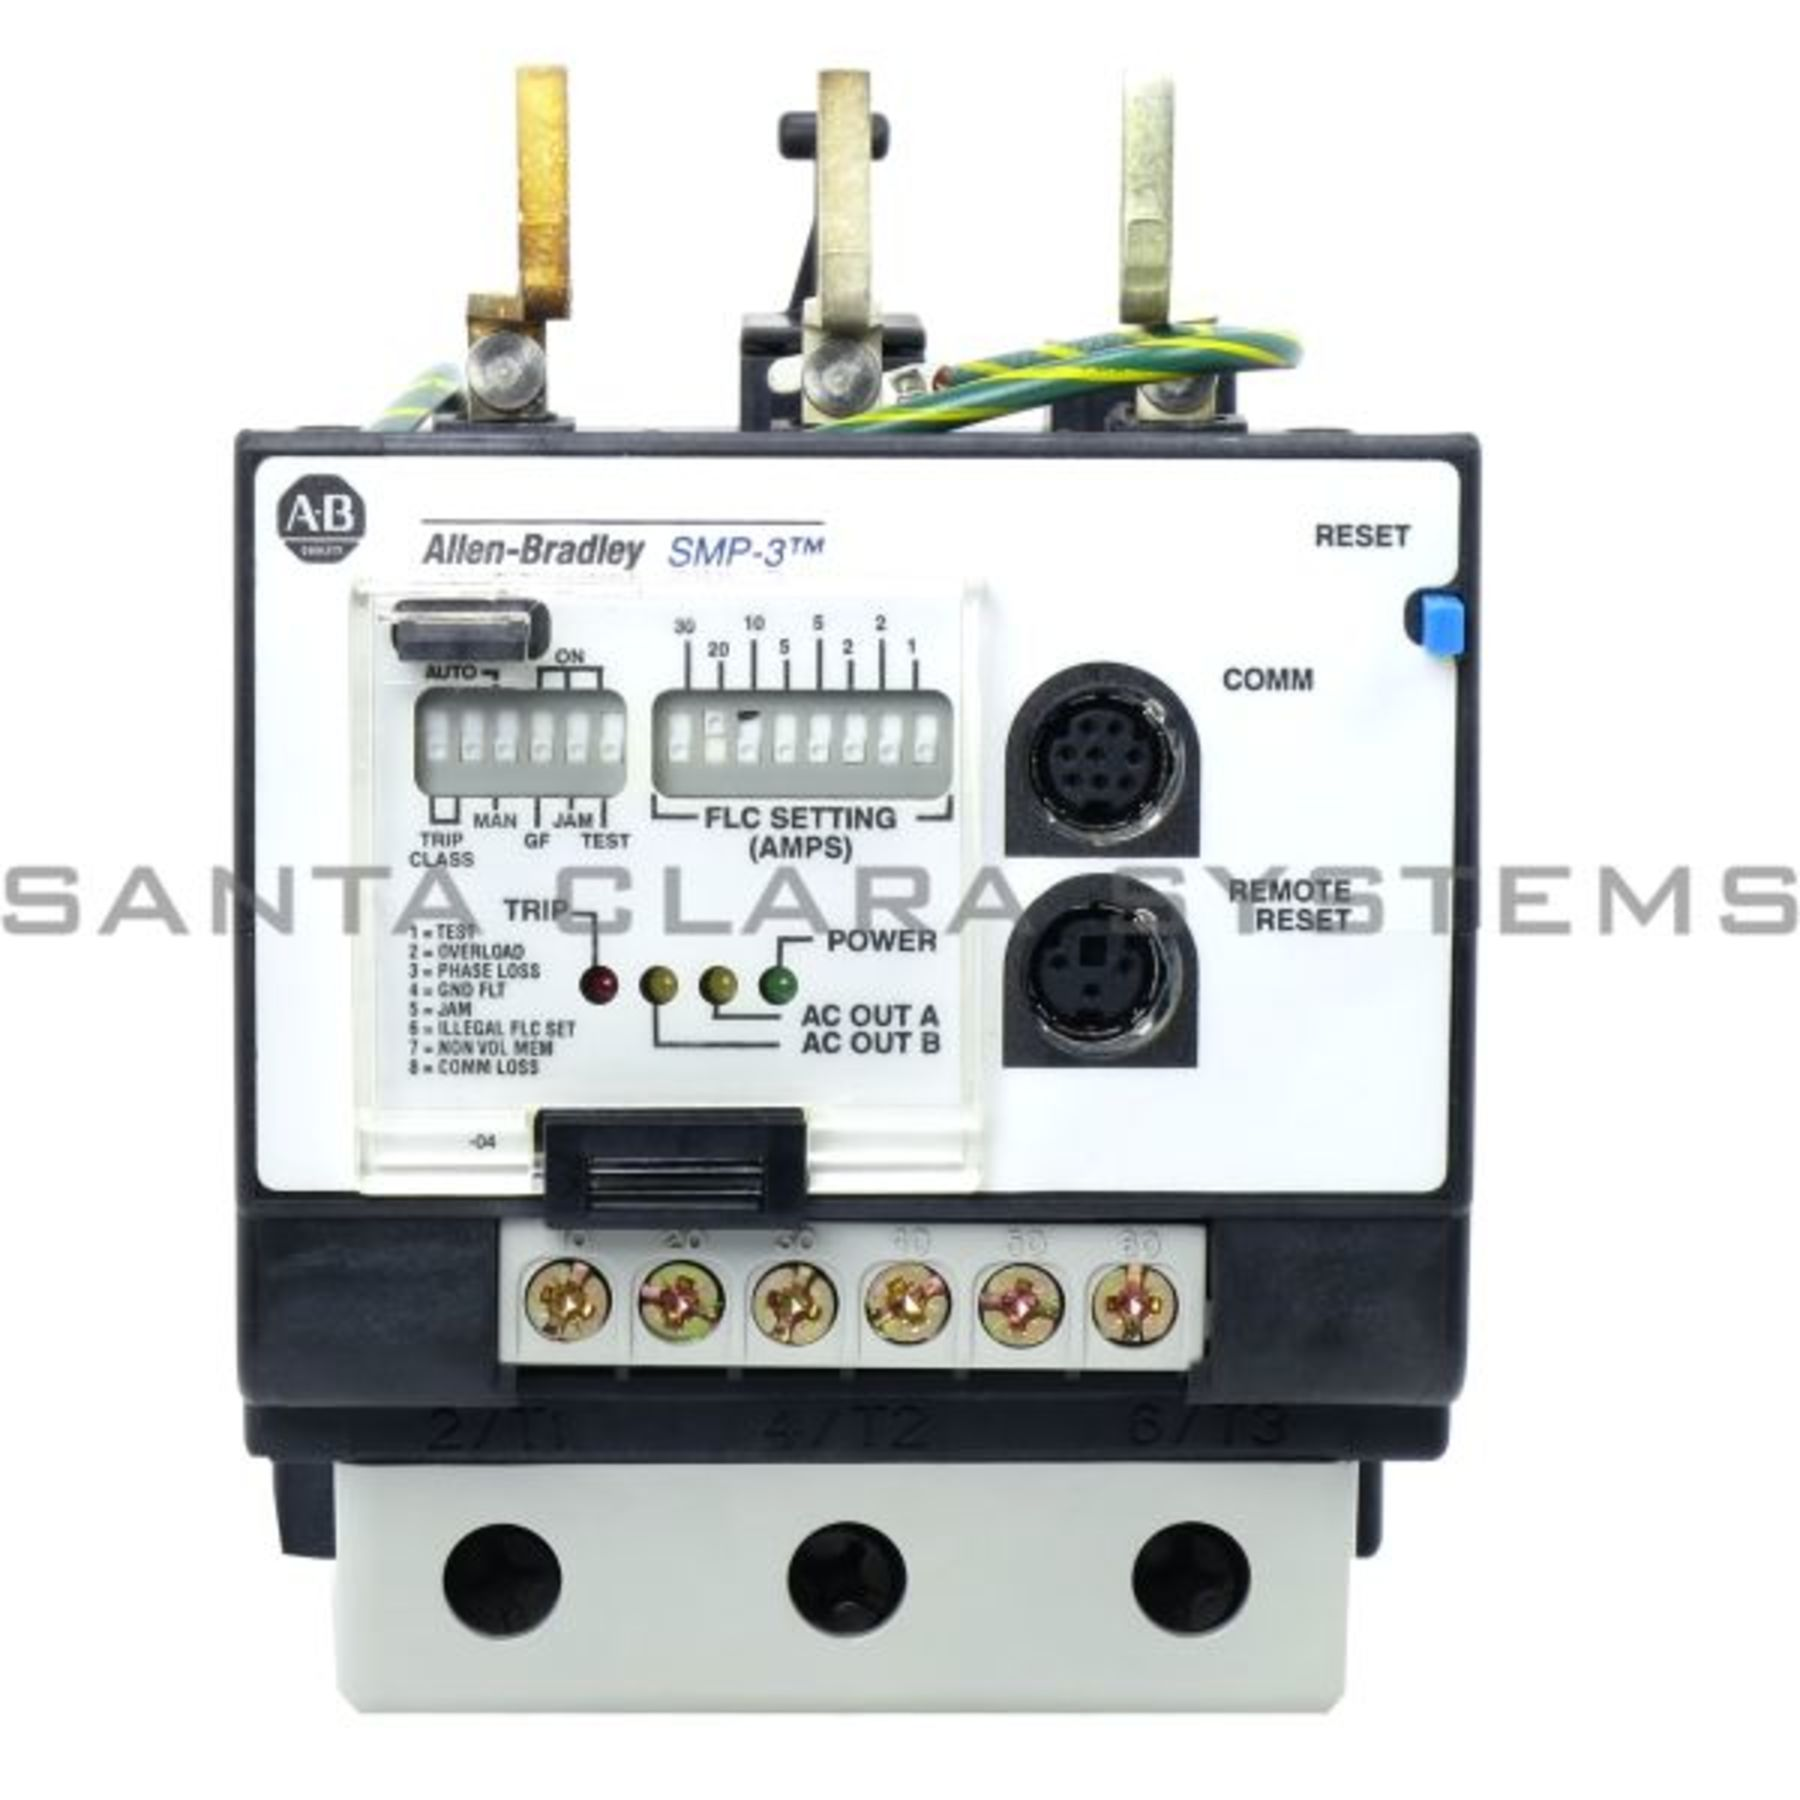 193 C1k3 Allen Bradley In Stock And Ready To Ship Santa Clara Systems Solid State Relay Testing Overload Product Image